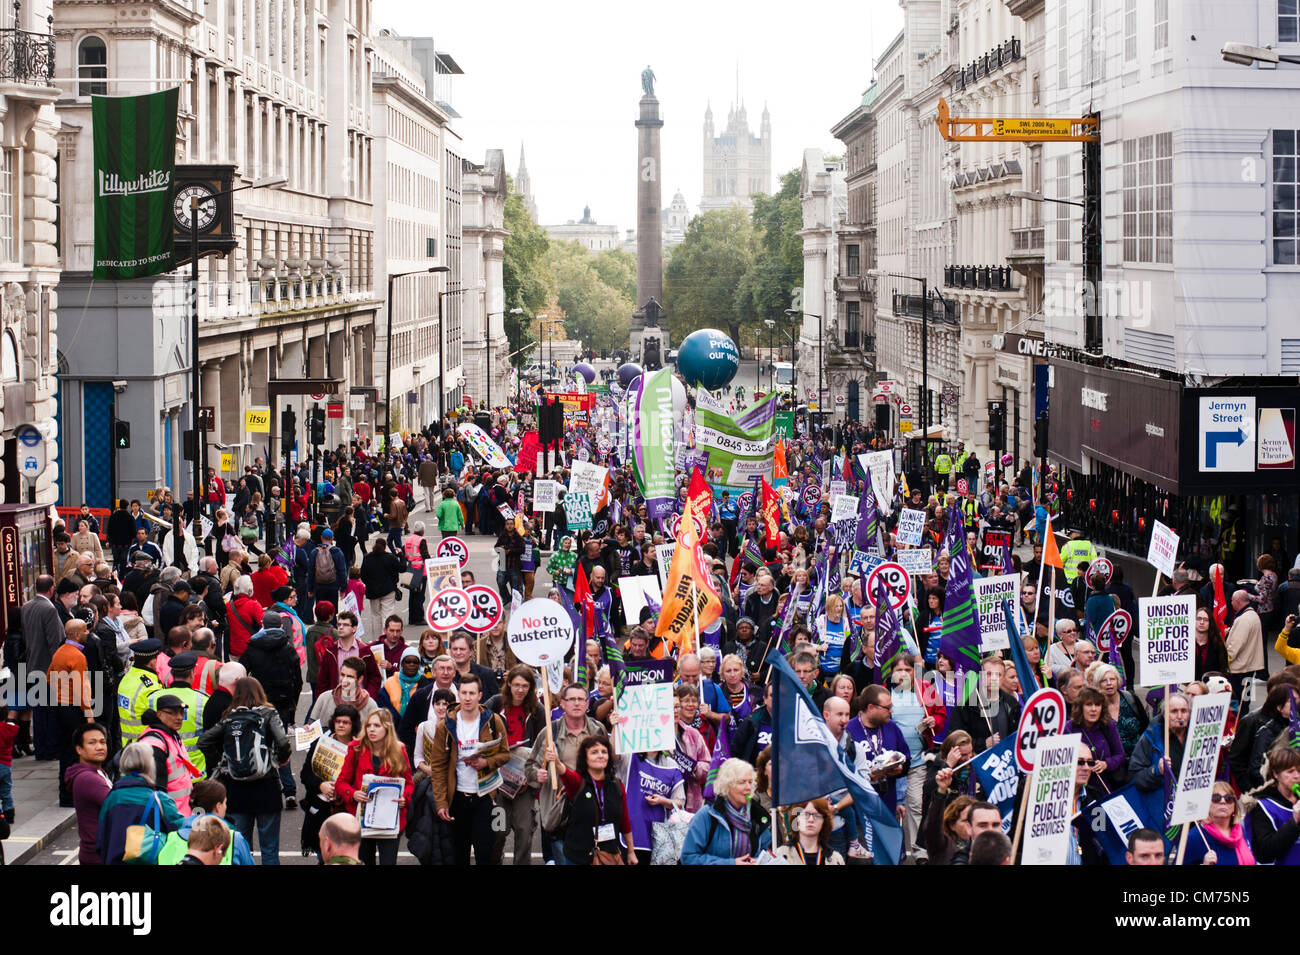 London, UK - 20 October 2012: thousands of protesters join the TUC-organised march 'A future that works' - Stock Image